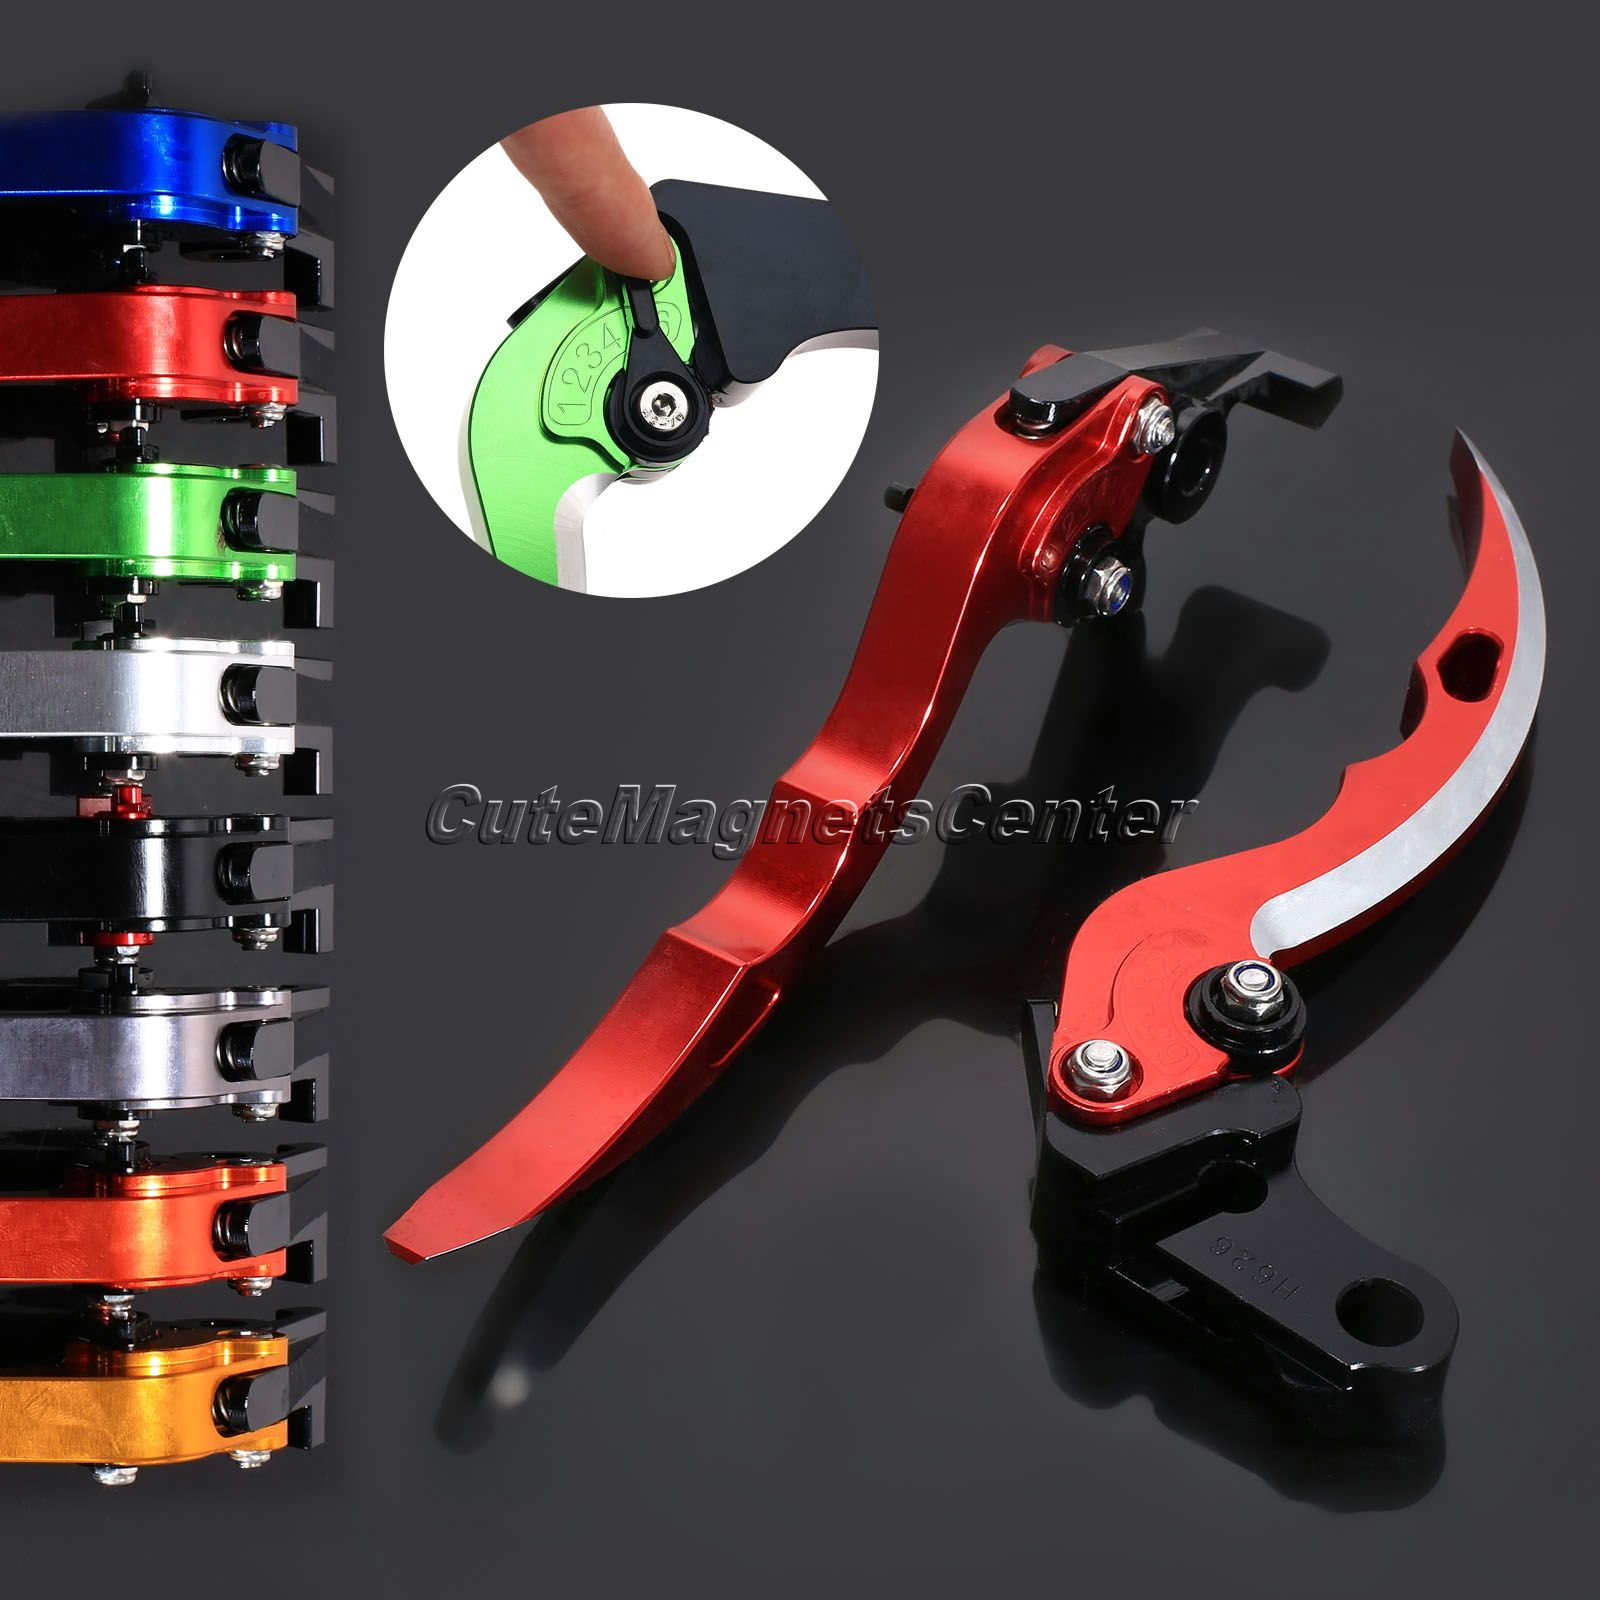 CNC Adjustable Levers Brake Clutch Levers Blade Motorcycle Brakes Accessories For Ducati Monster 1100 DS Aprilia RSV MILLE / R